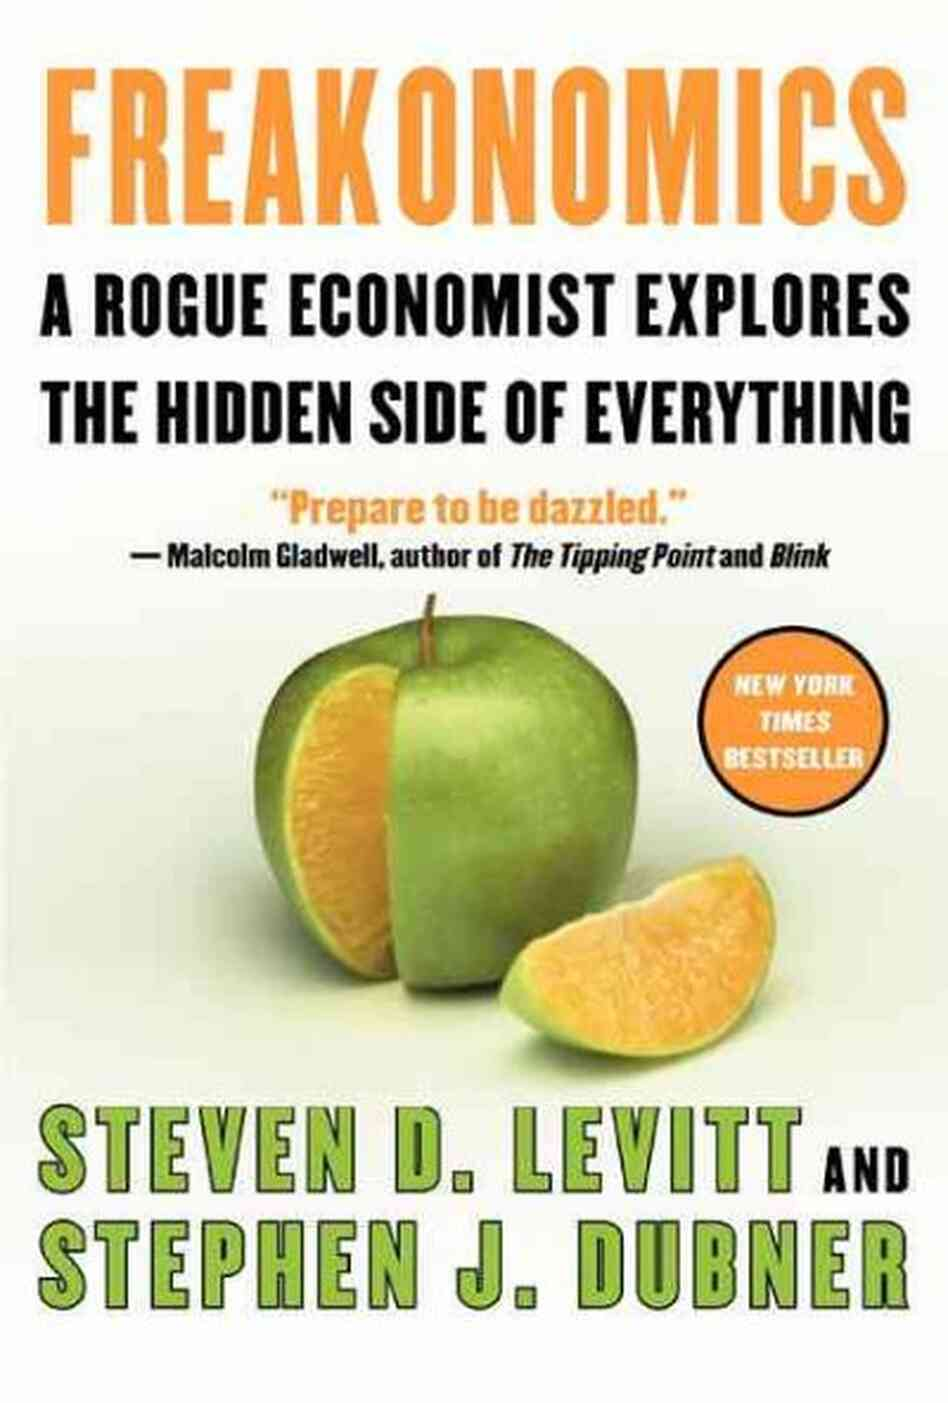 an analysis of freaknomics a rogue economist explores the hidden of everything Chapter 2 summary of freakonomics chapter 2 summary organisations often face new and sometimes threatening challenges the 4 contemporary management functions have been around for years: planning, controlling, leading and organizing.